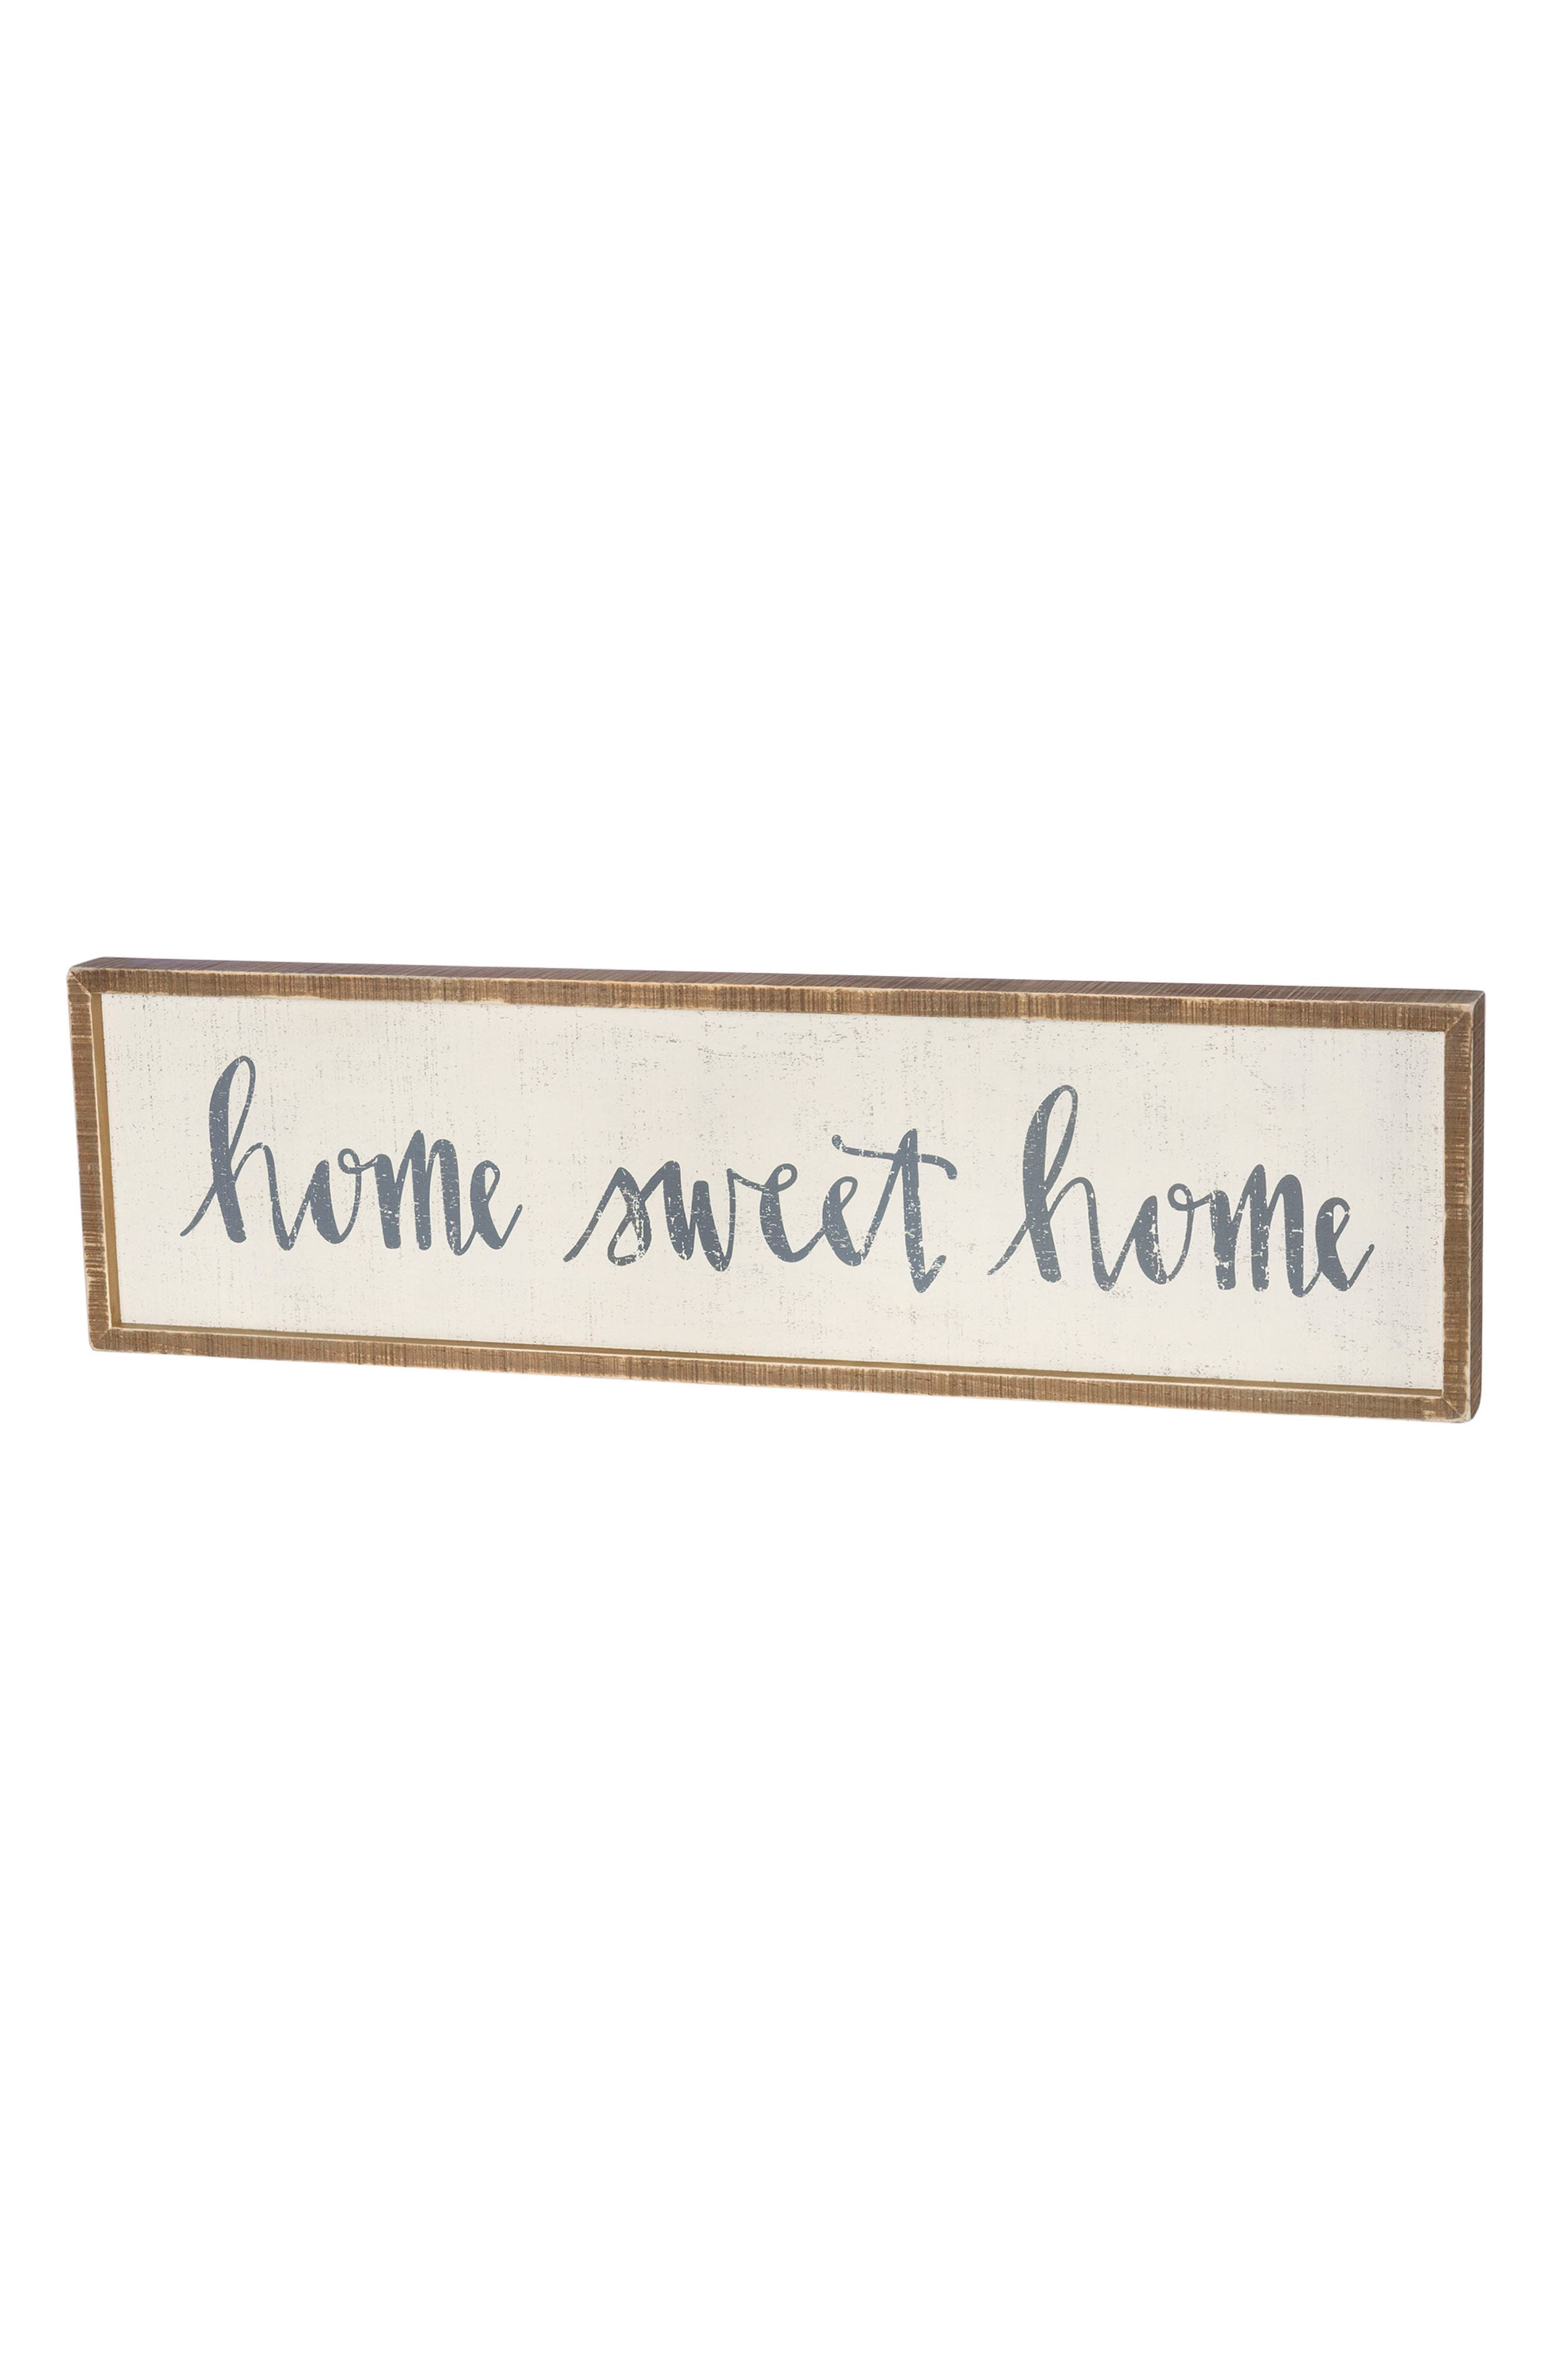 Primitives by Kathy Home Sweet Home Inset Box Sign